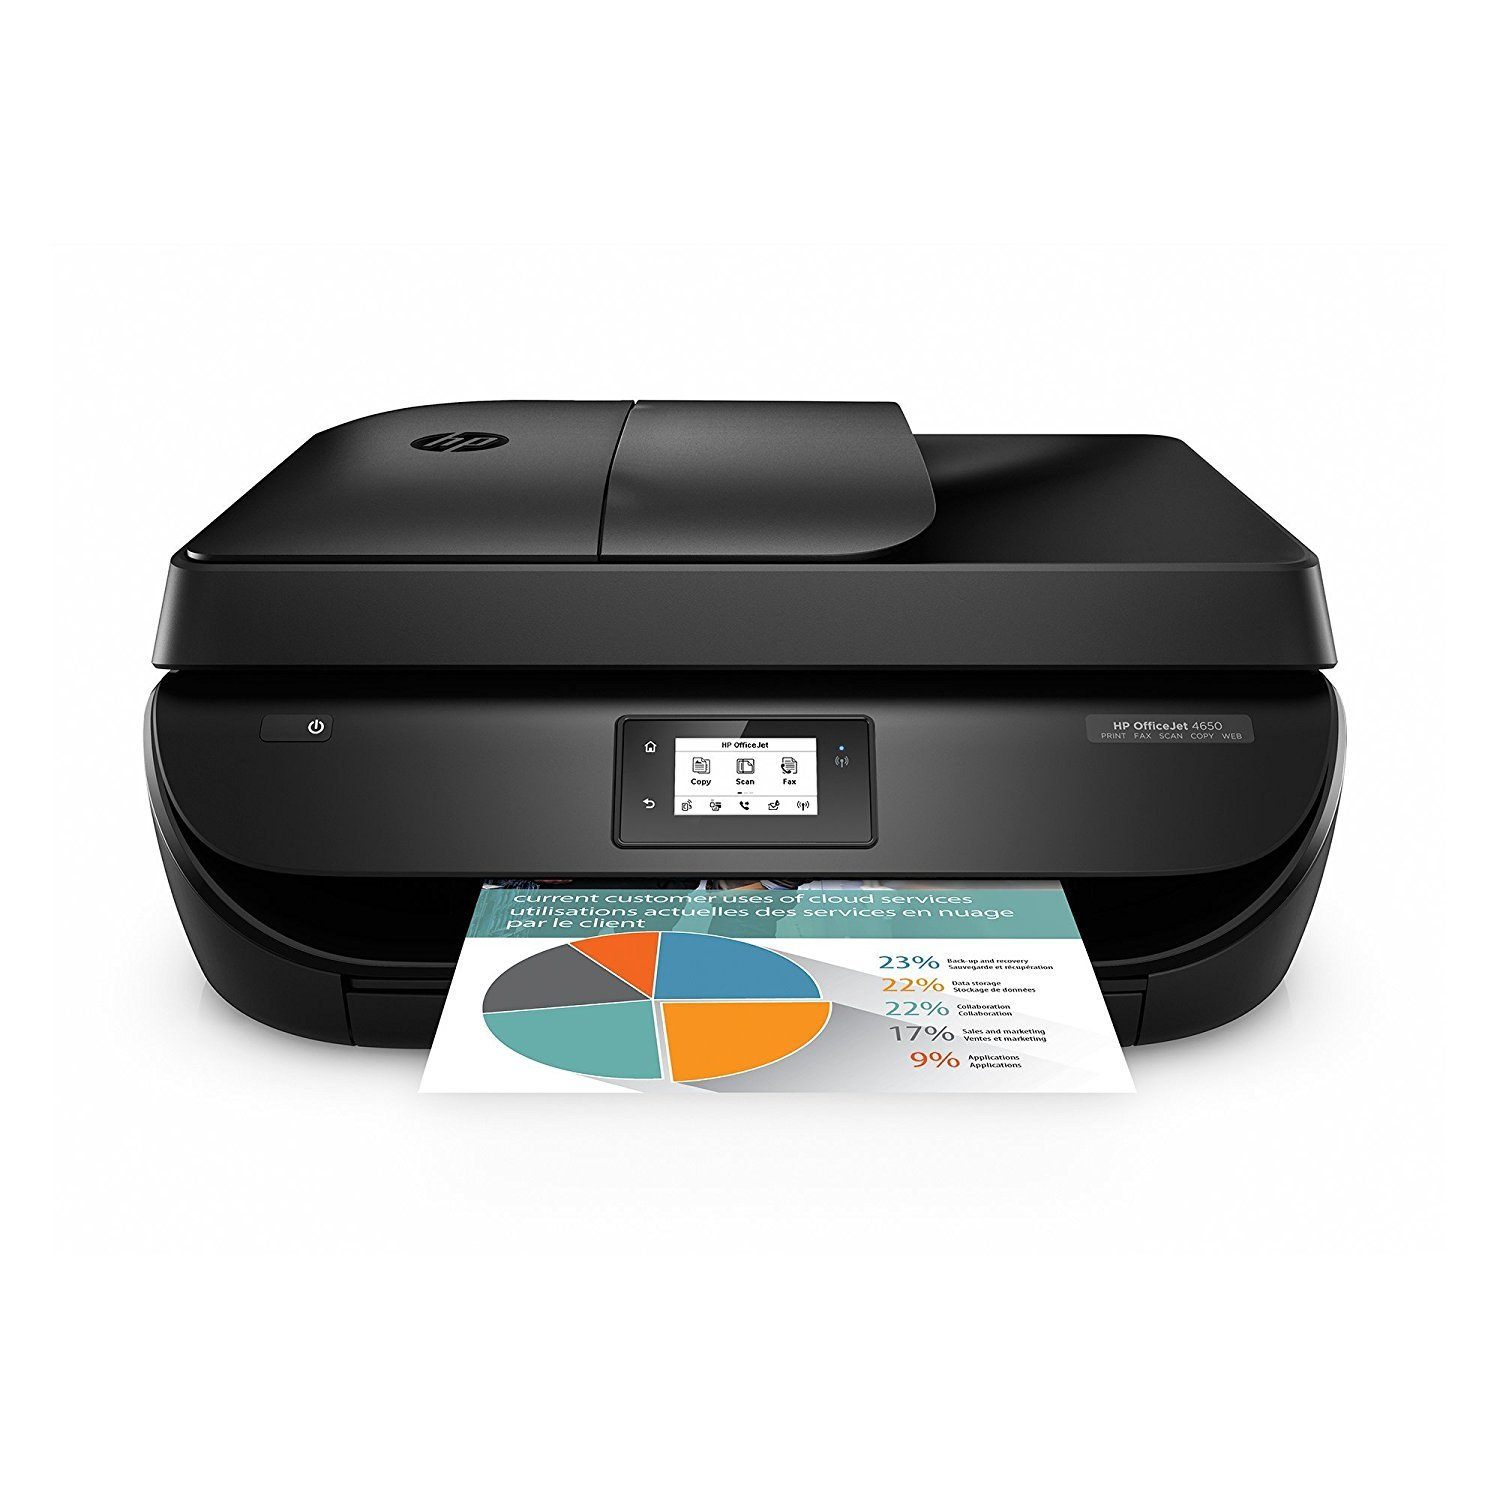 HP OfficeJet 4650 Wireless All-in-One Photo Printer, Copier and Scanner - Black (Certified Refurbished)